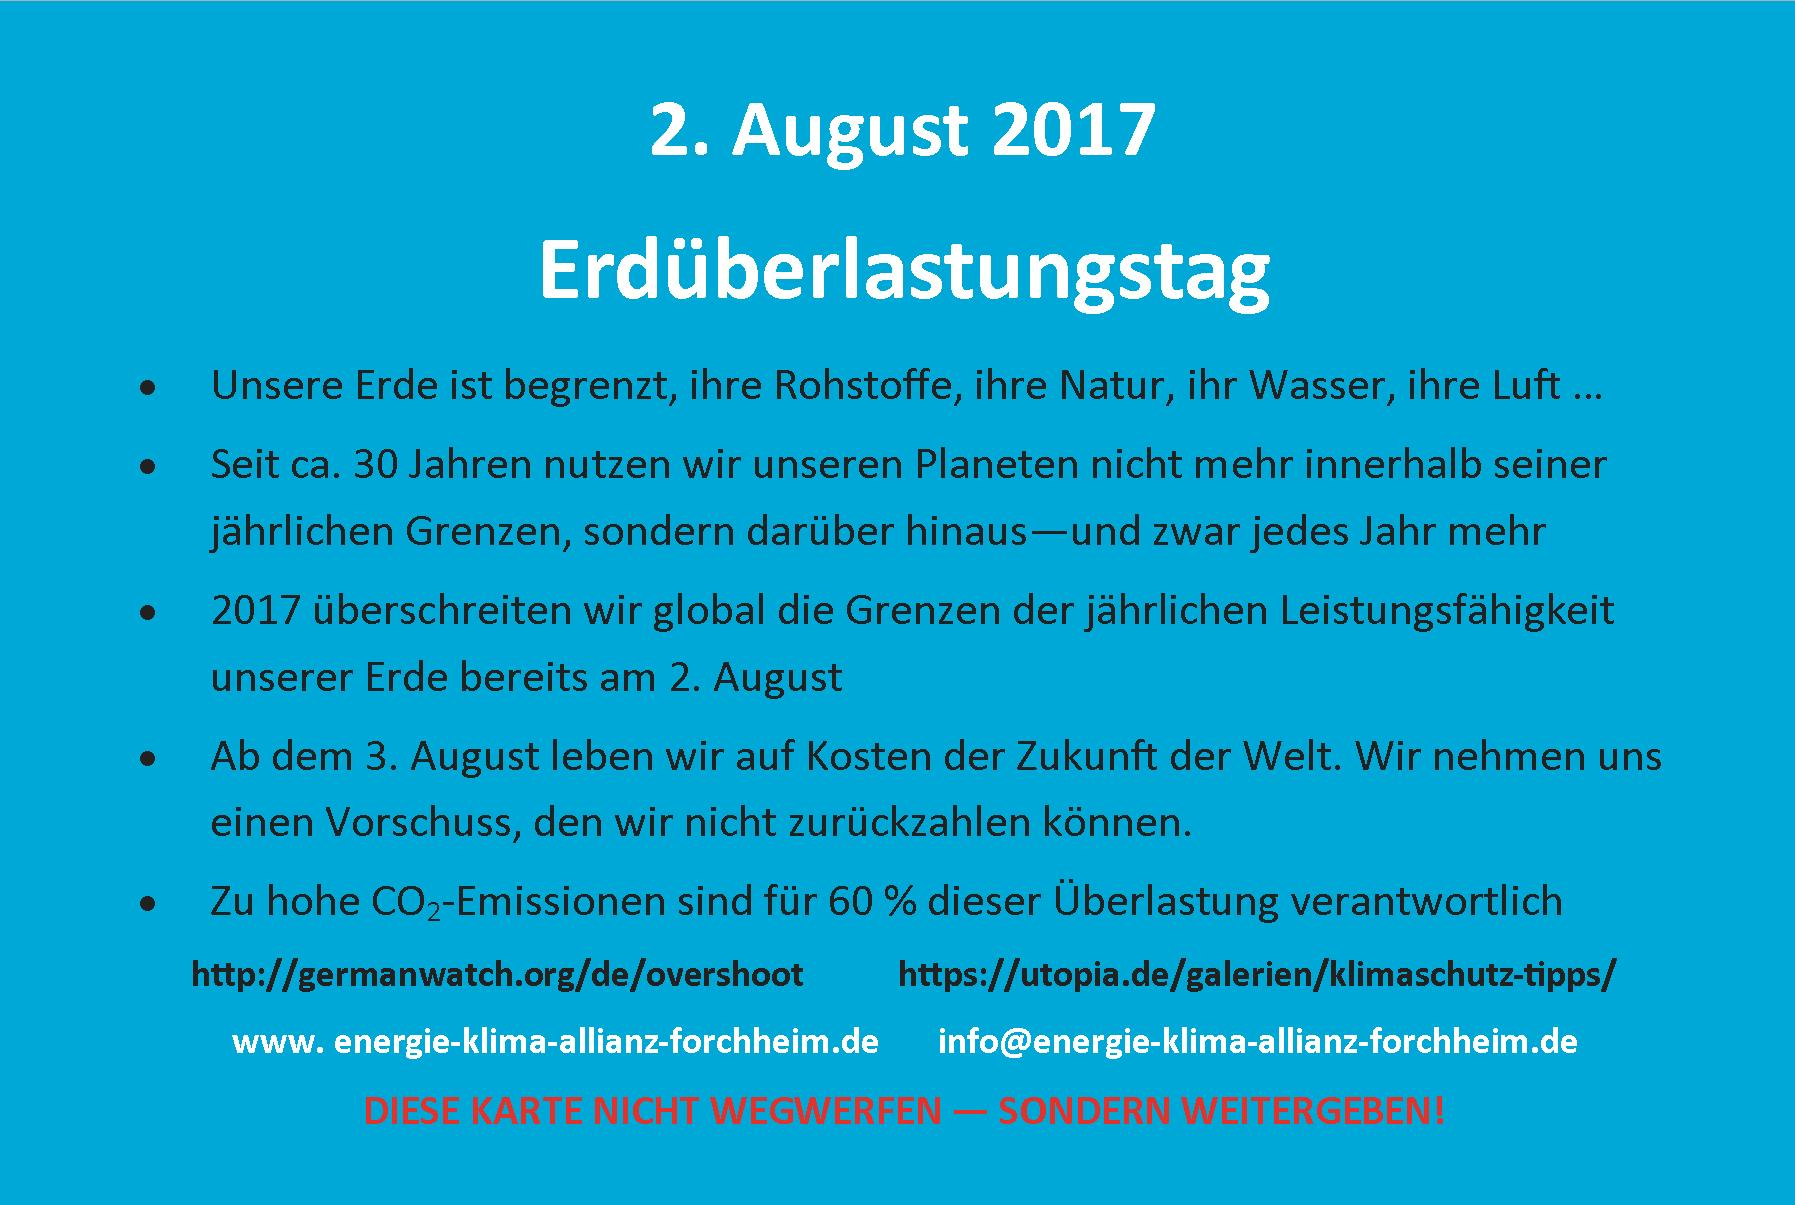 2. August 2017 Erdueberlastungstag